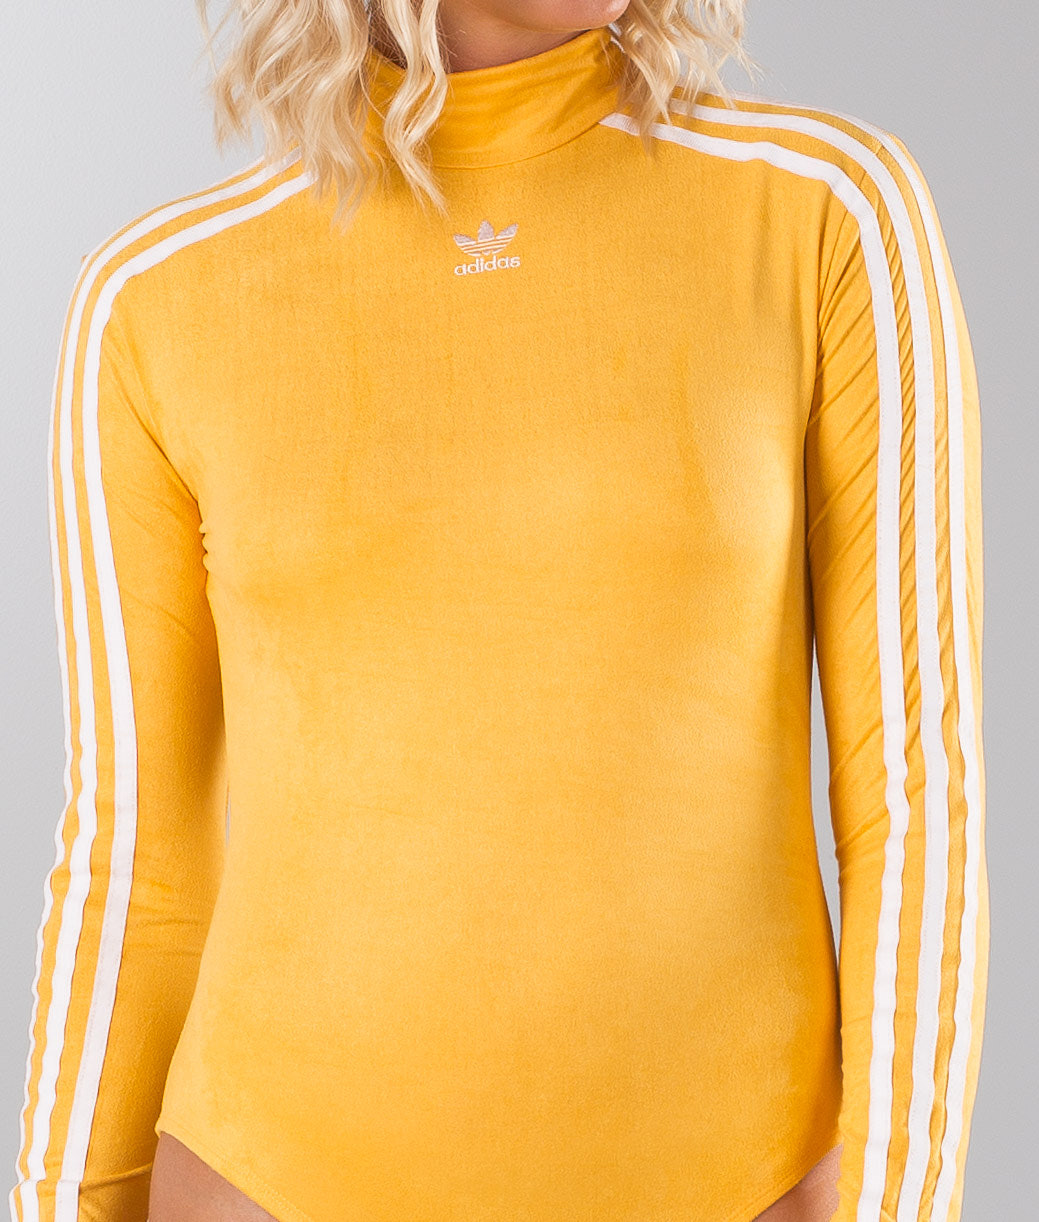 f9735f0e7eb4 Adidas Originals 3 Stripes Body Longsleeve Chalk Orange - Ridestore.com